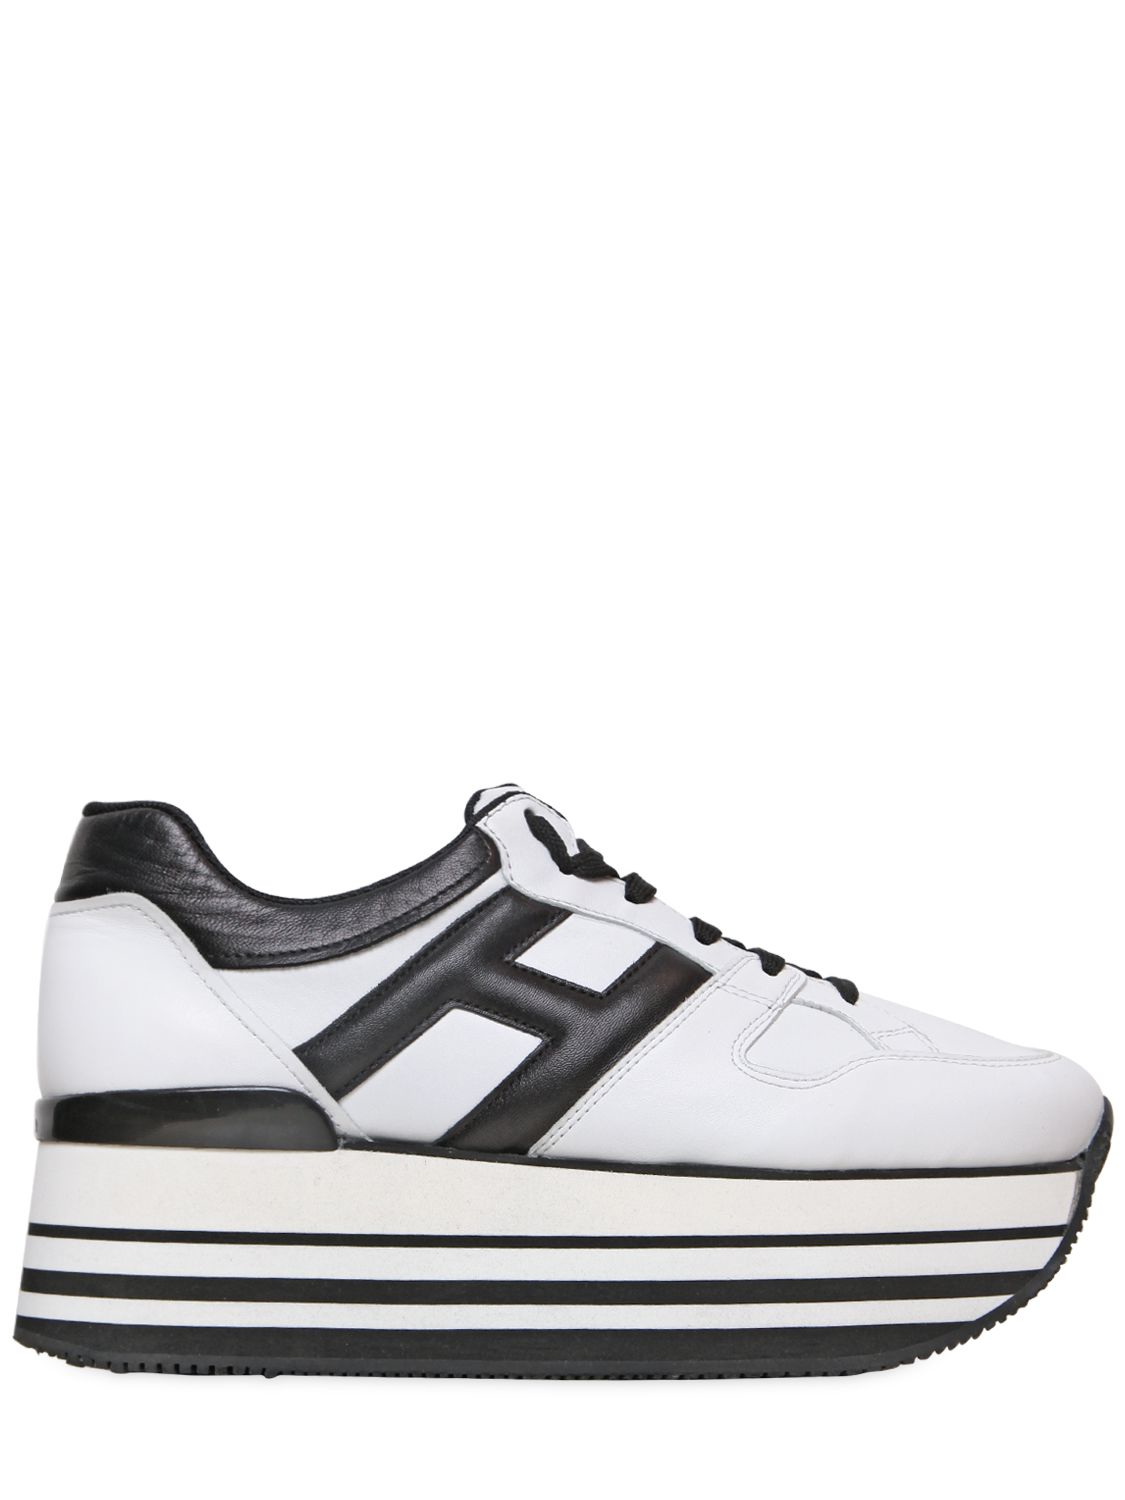 57c58a9e796 Lyst - Hogan 70mm Sportivo Leather Platform Sneakers in White